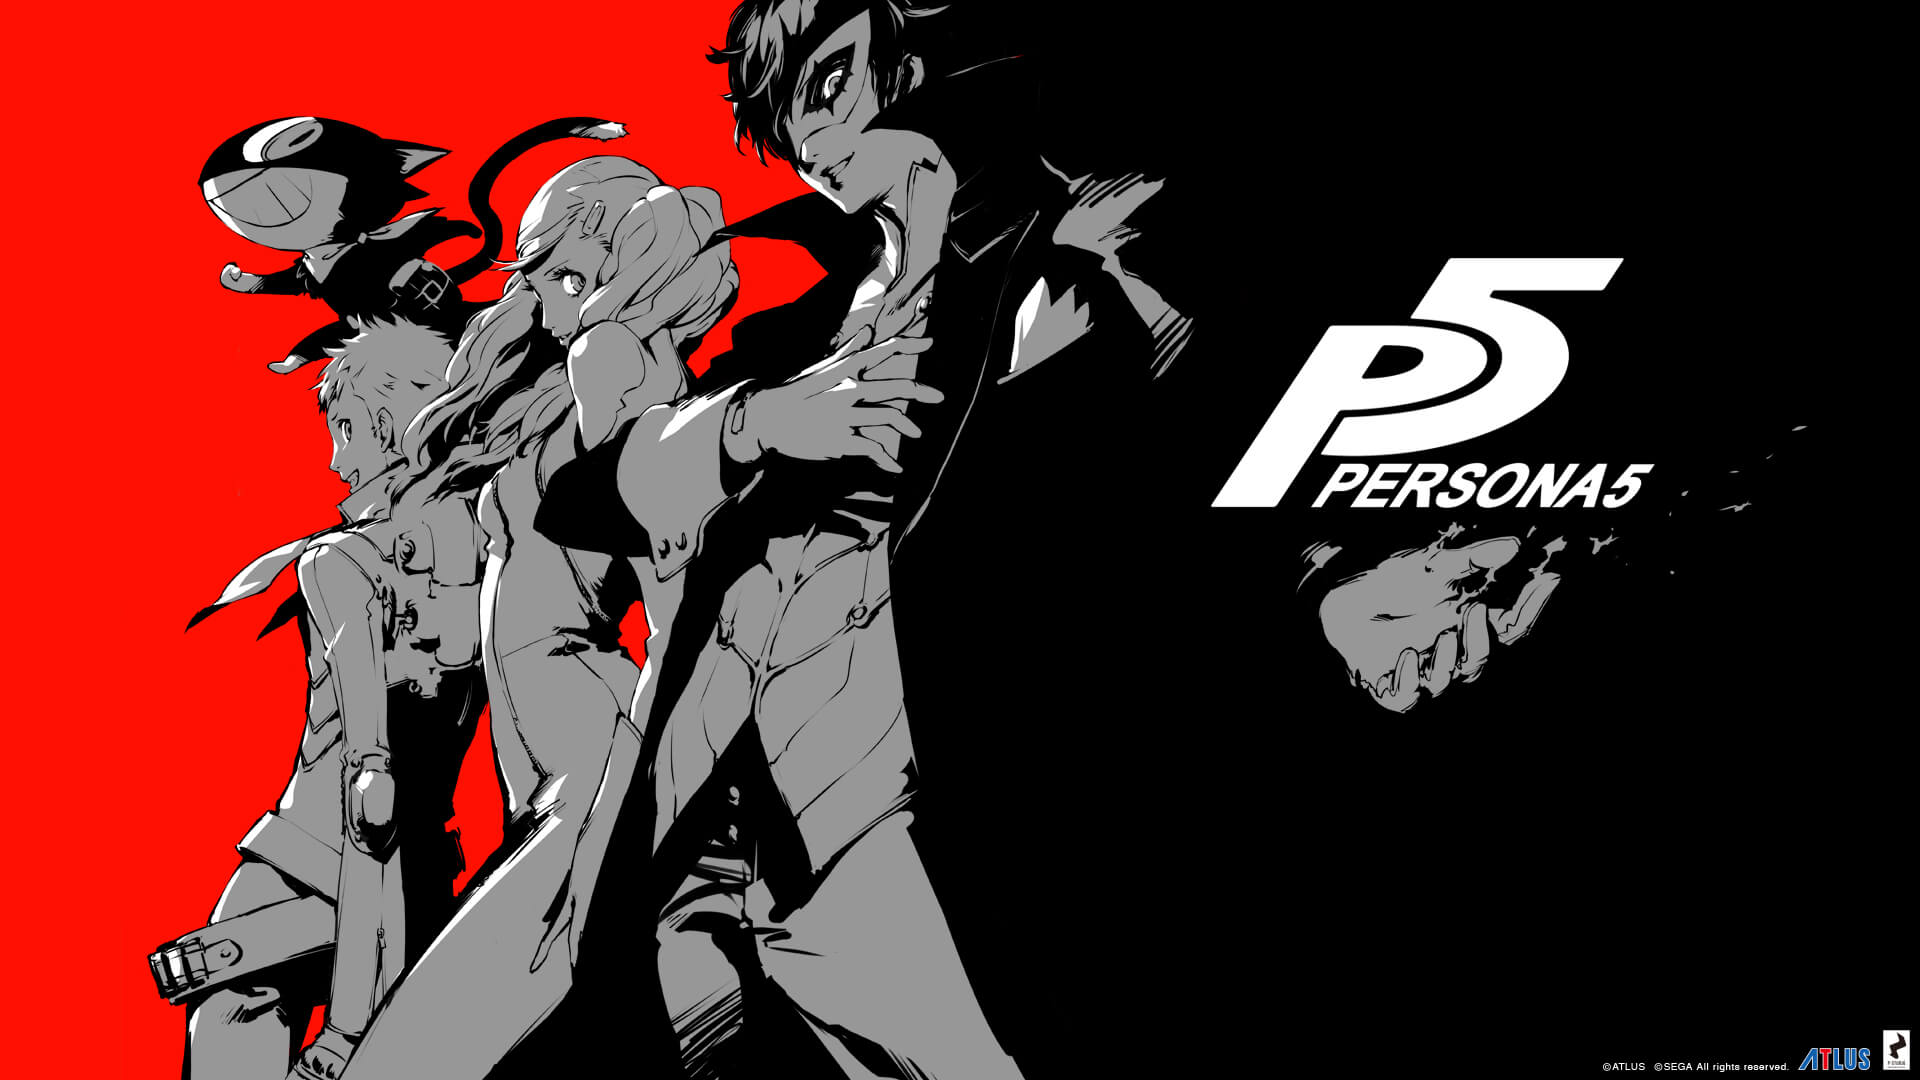 Persona 5 is the Latest Video Game to get an Animated Adaptation